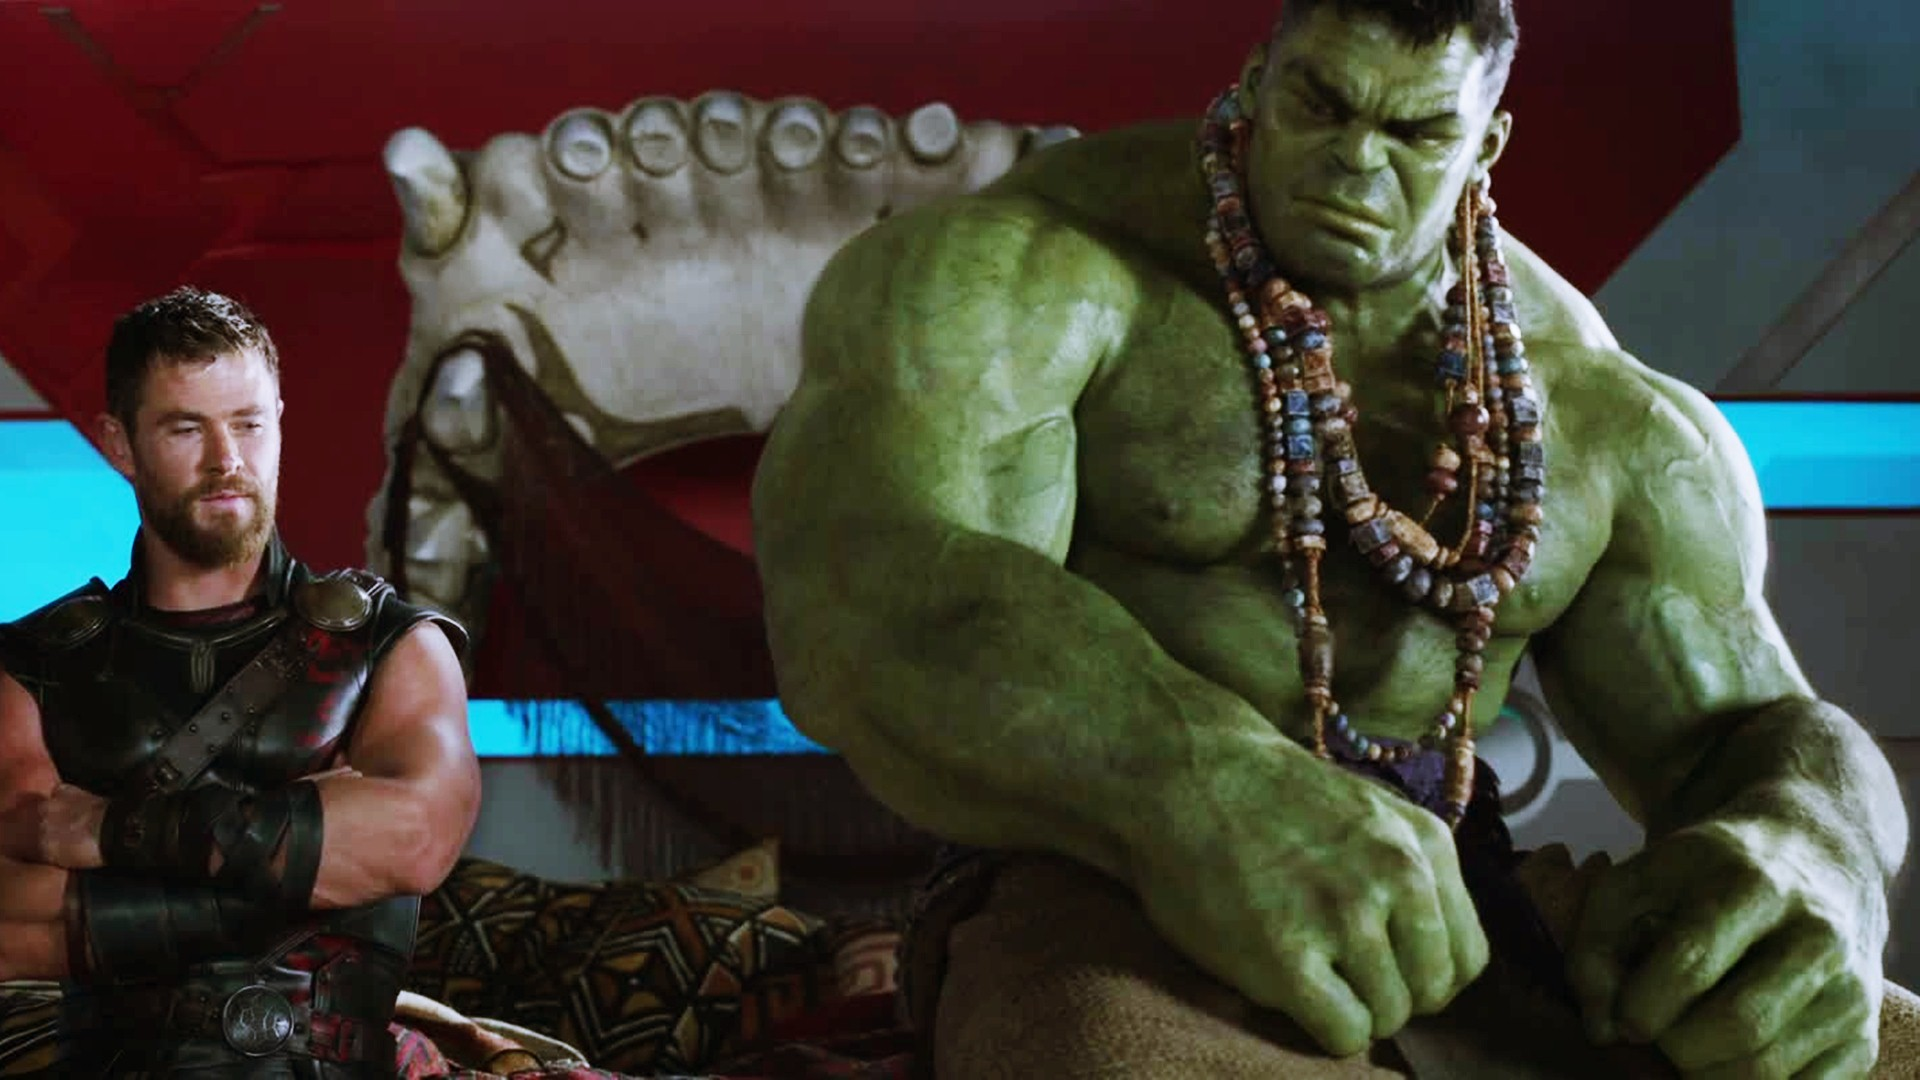 The exchanges between Thor and the Hulk are one of the high points of the movie